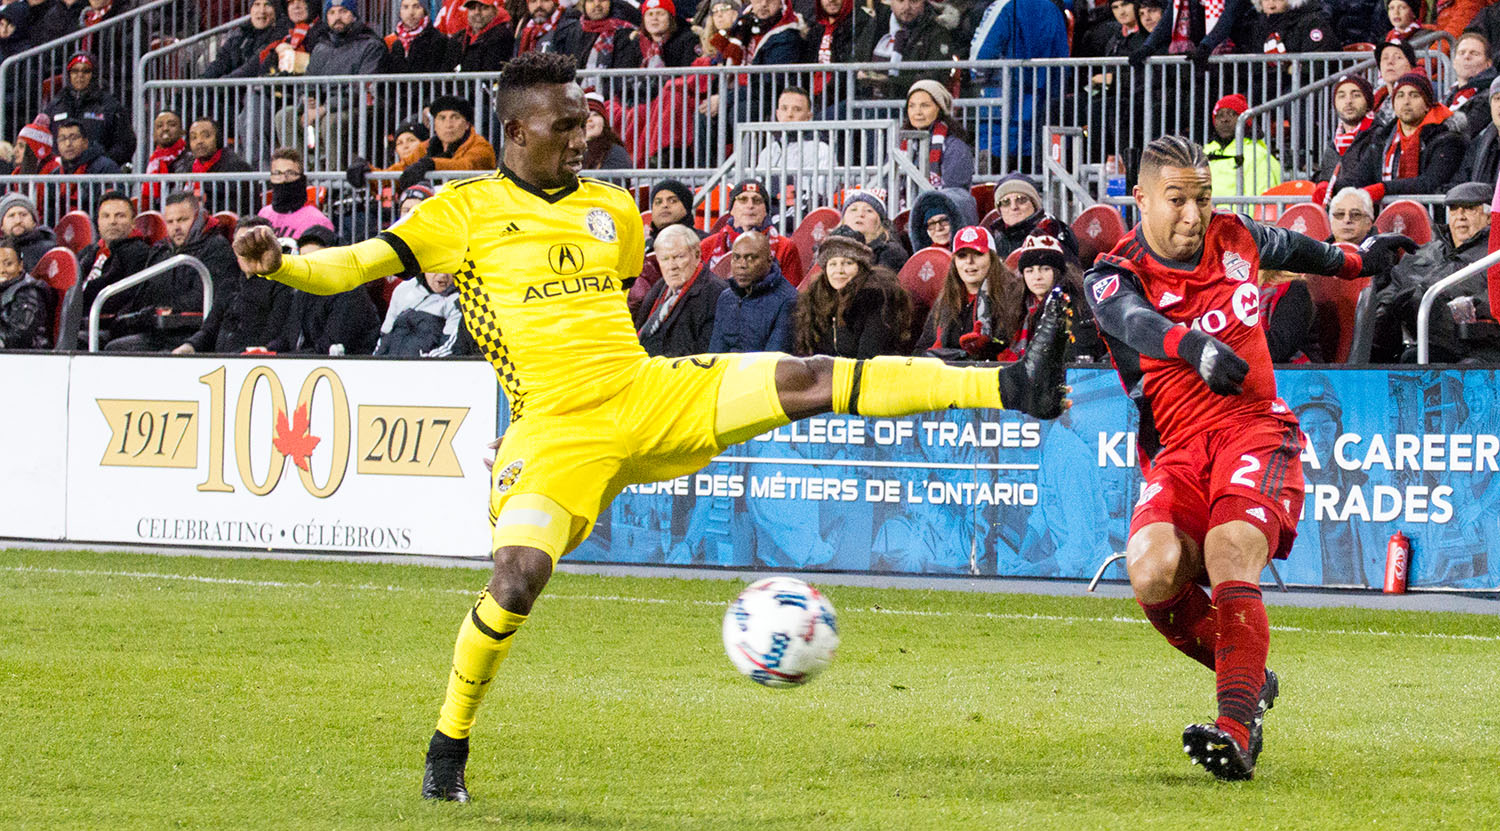 Justin Morrow avoids getting studs penetrating his skin as a Columbus Crew player makes a dangerous attack on the ball.Image by Dennis Marciniak of denMAR Media.